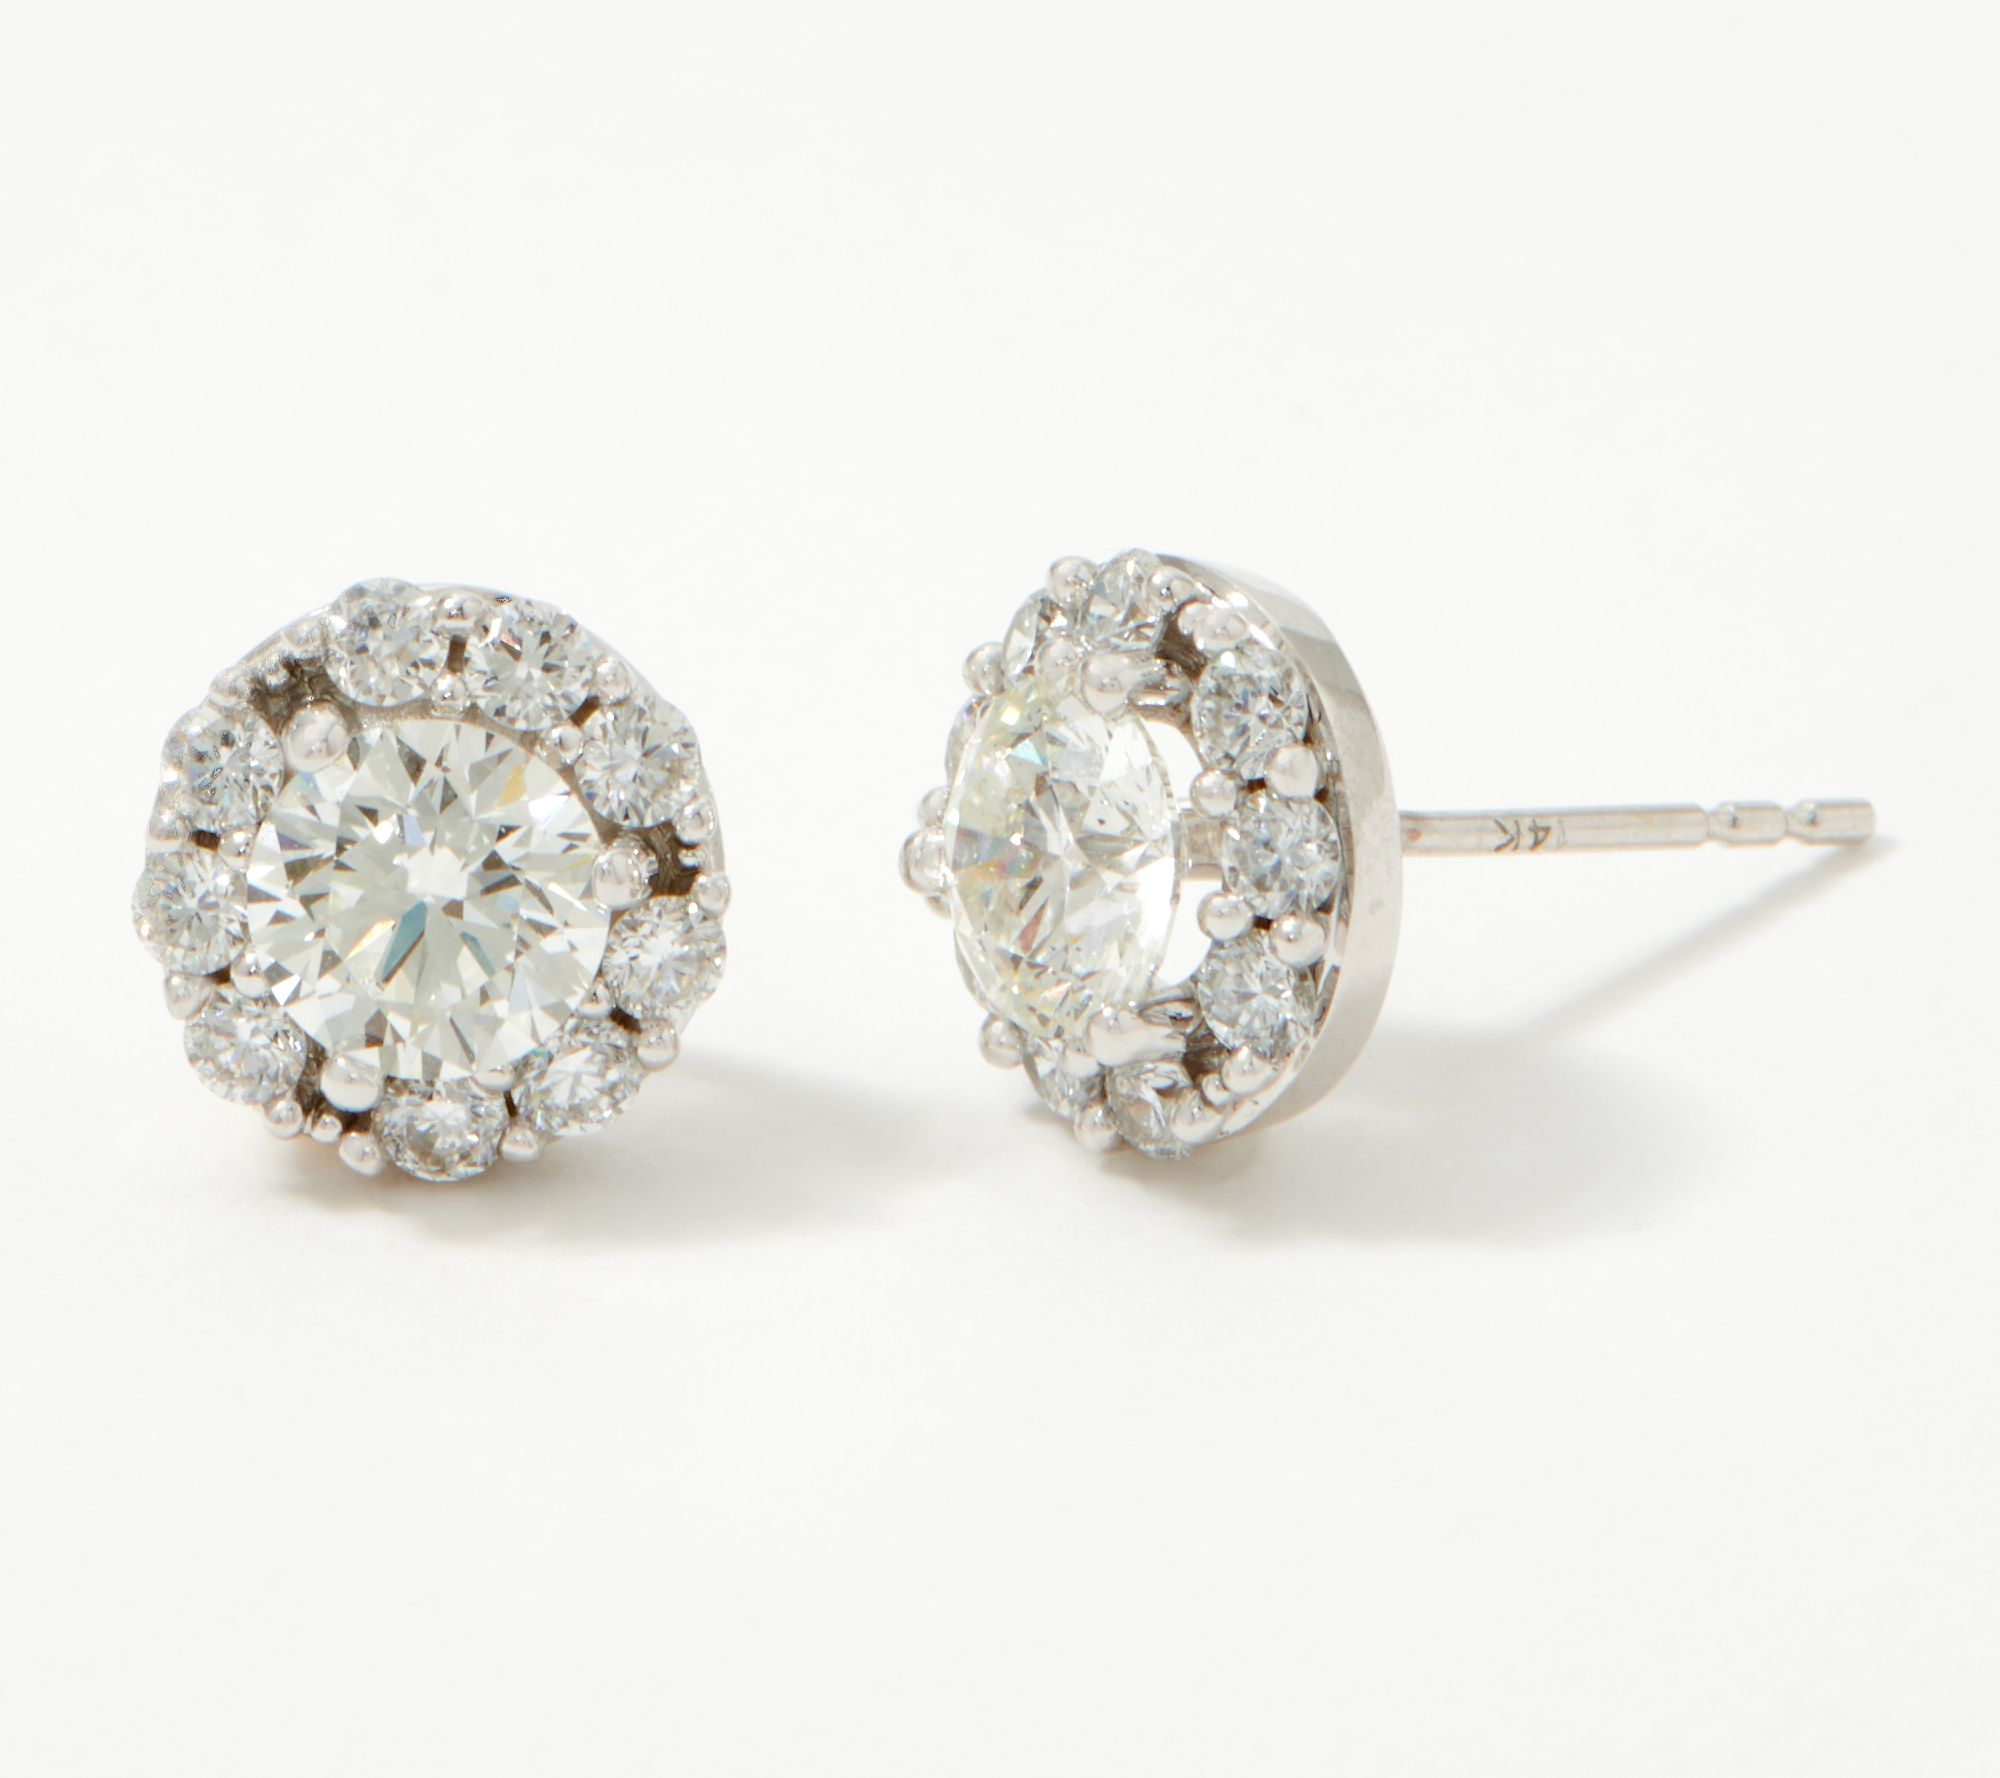 T.W 14k Yellow Gold 2.50 ct Round-Cut Created Diamond Solitaire Earrings